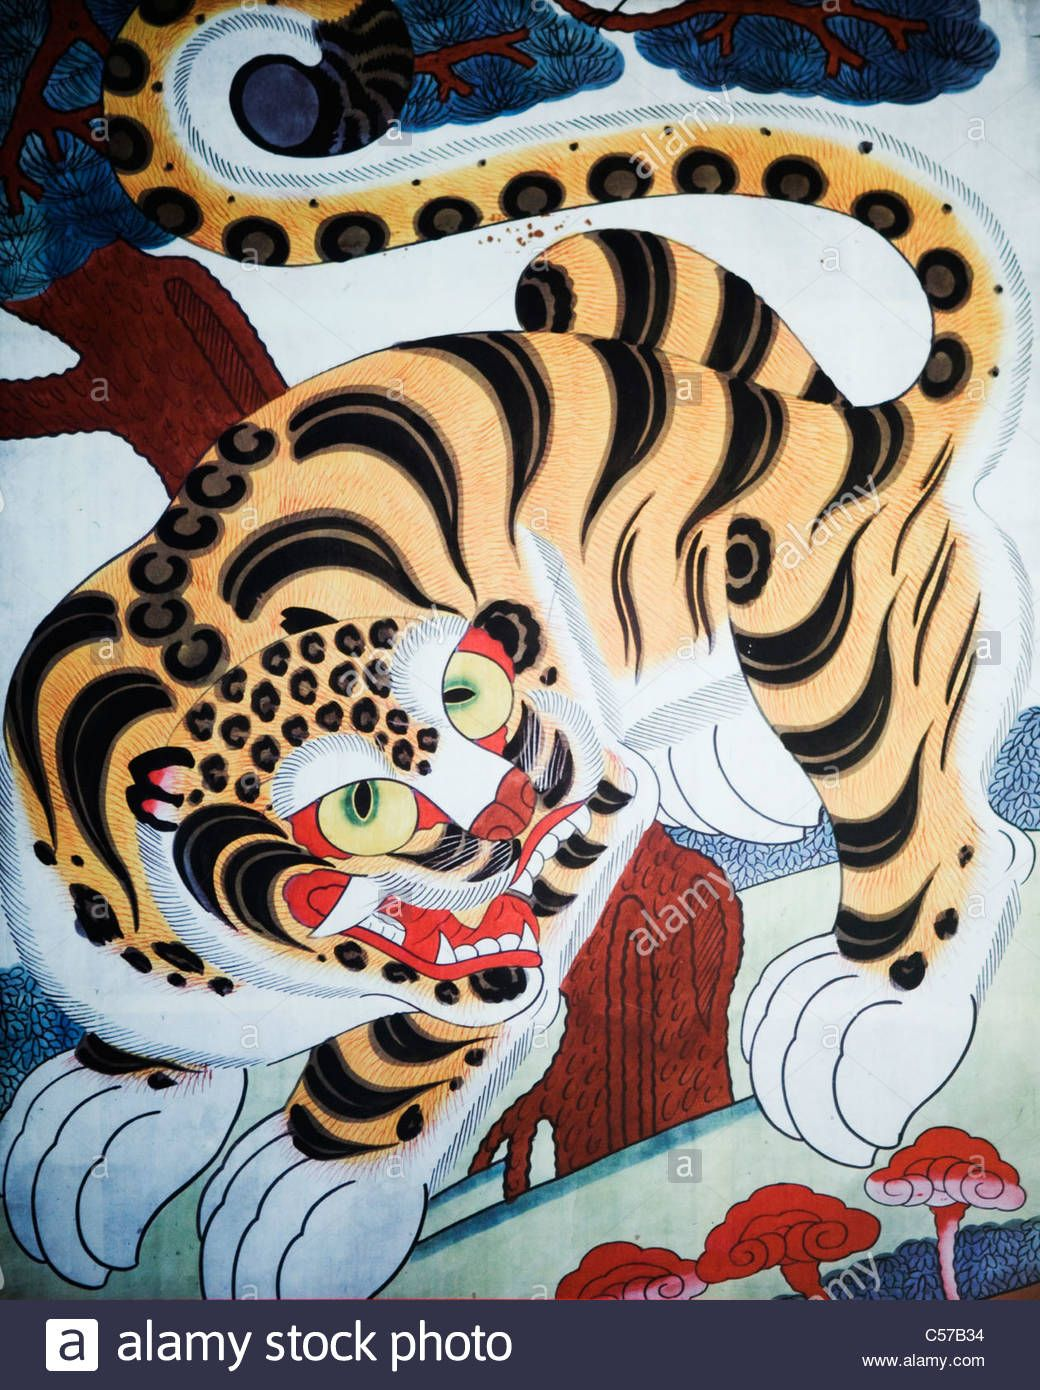 Minhwa korean folk painting showing the tiger symbol of courage minhwa korean folk painting showing the tiger symbol of courage and absolute power biocorpaavc Images